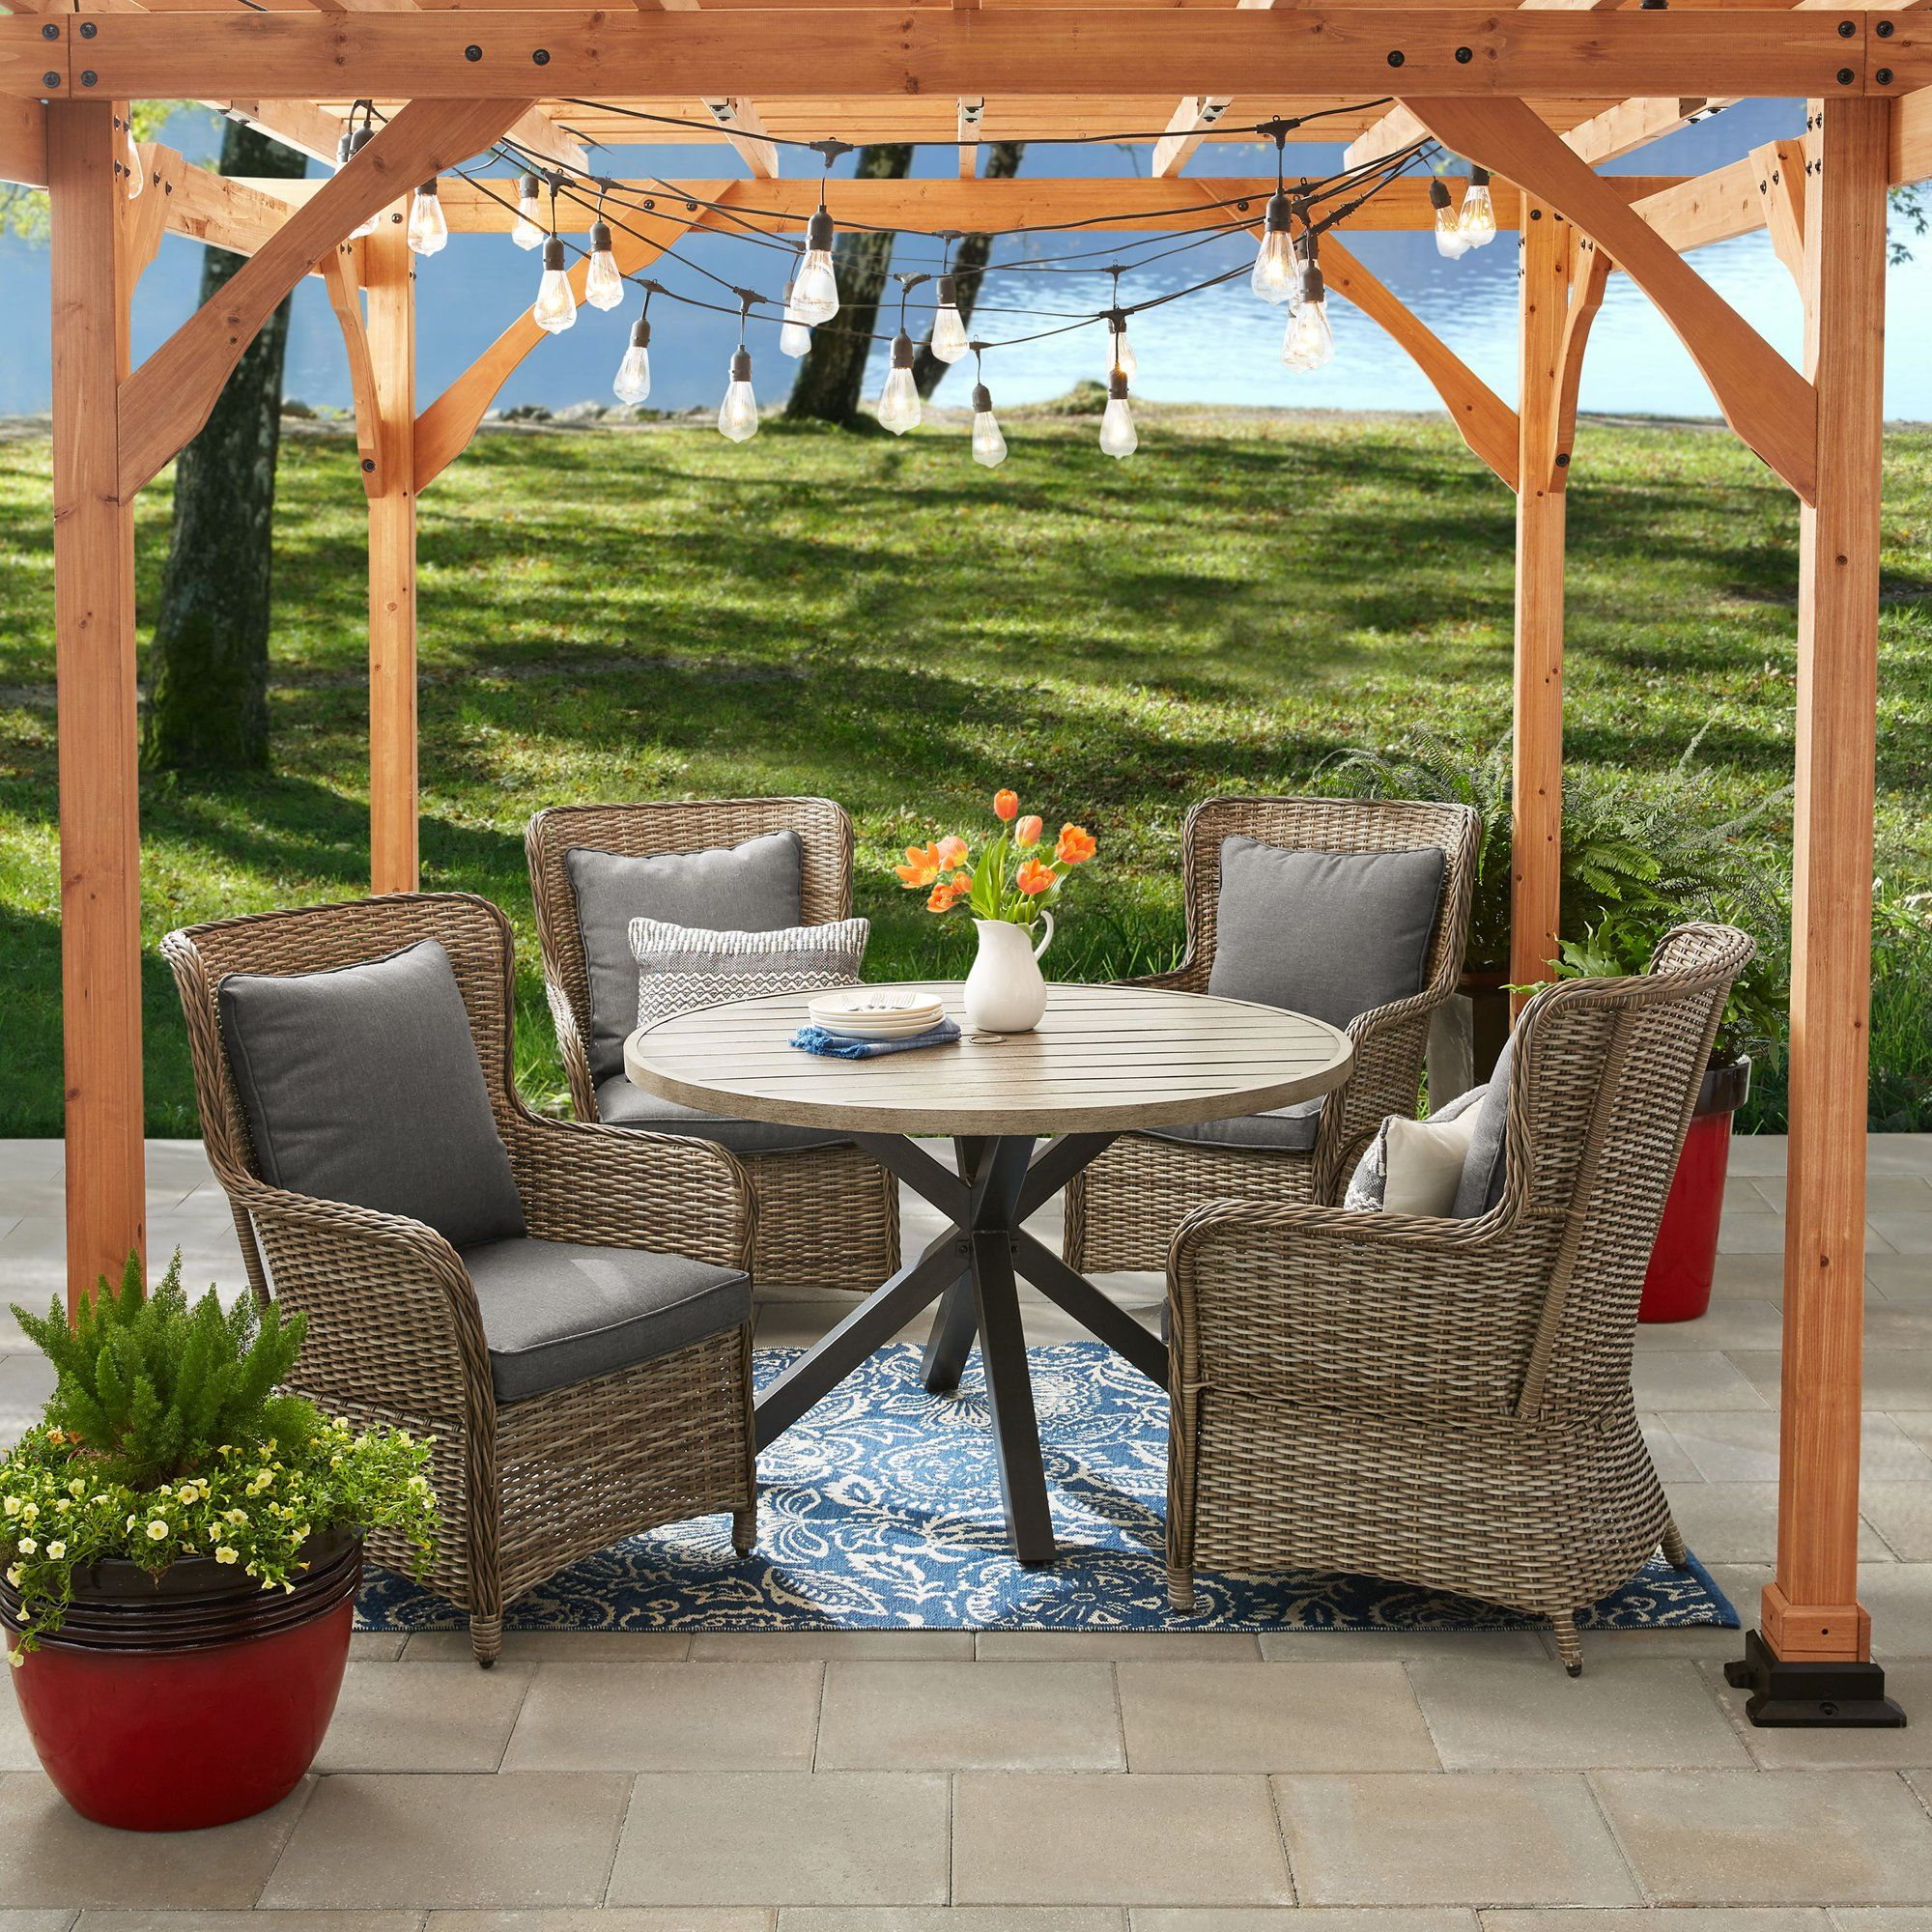 Better homes and gardens victoria outdoor dining patio set